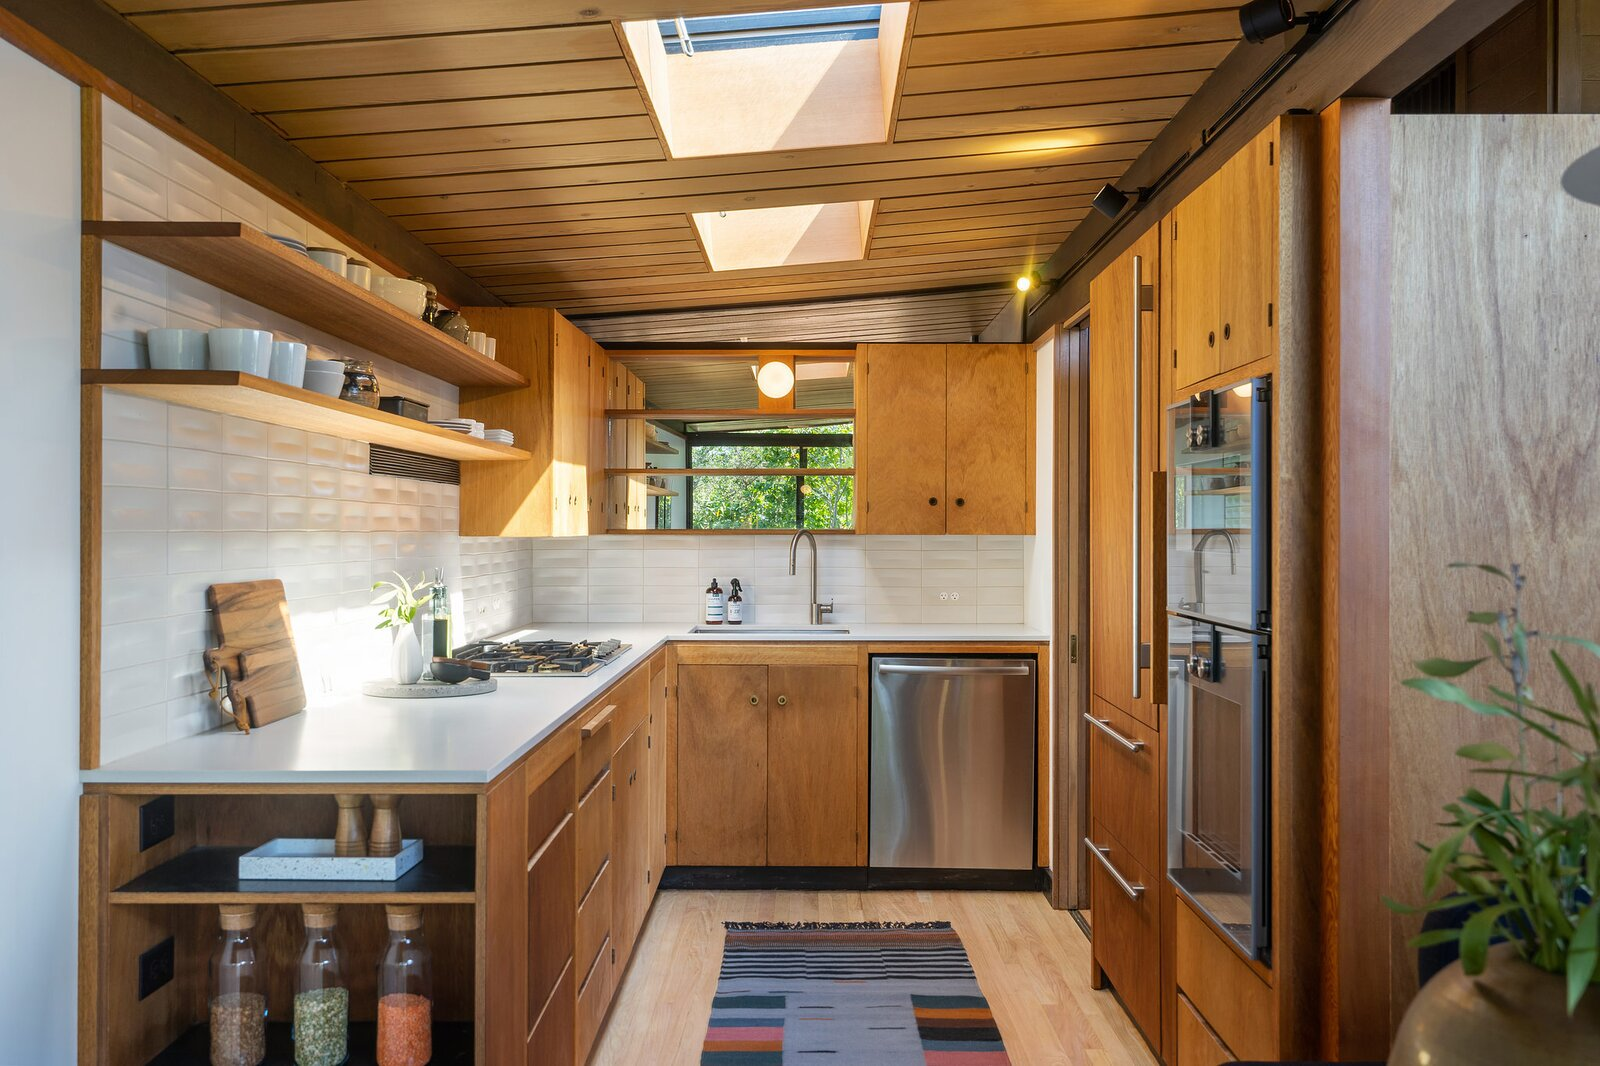 Kitchen in the Hargrove Residence by Roger Lee